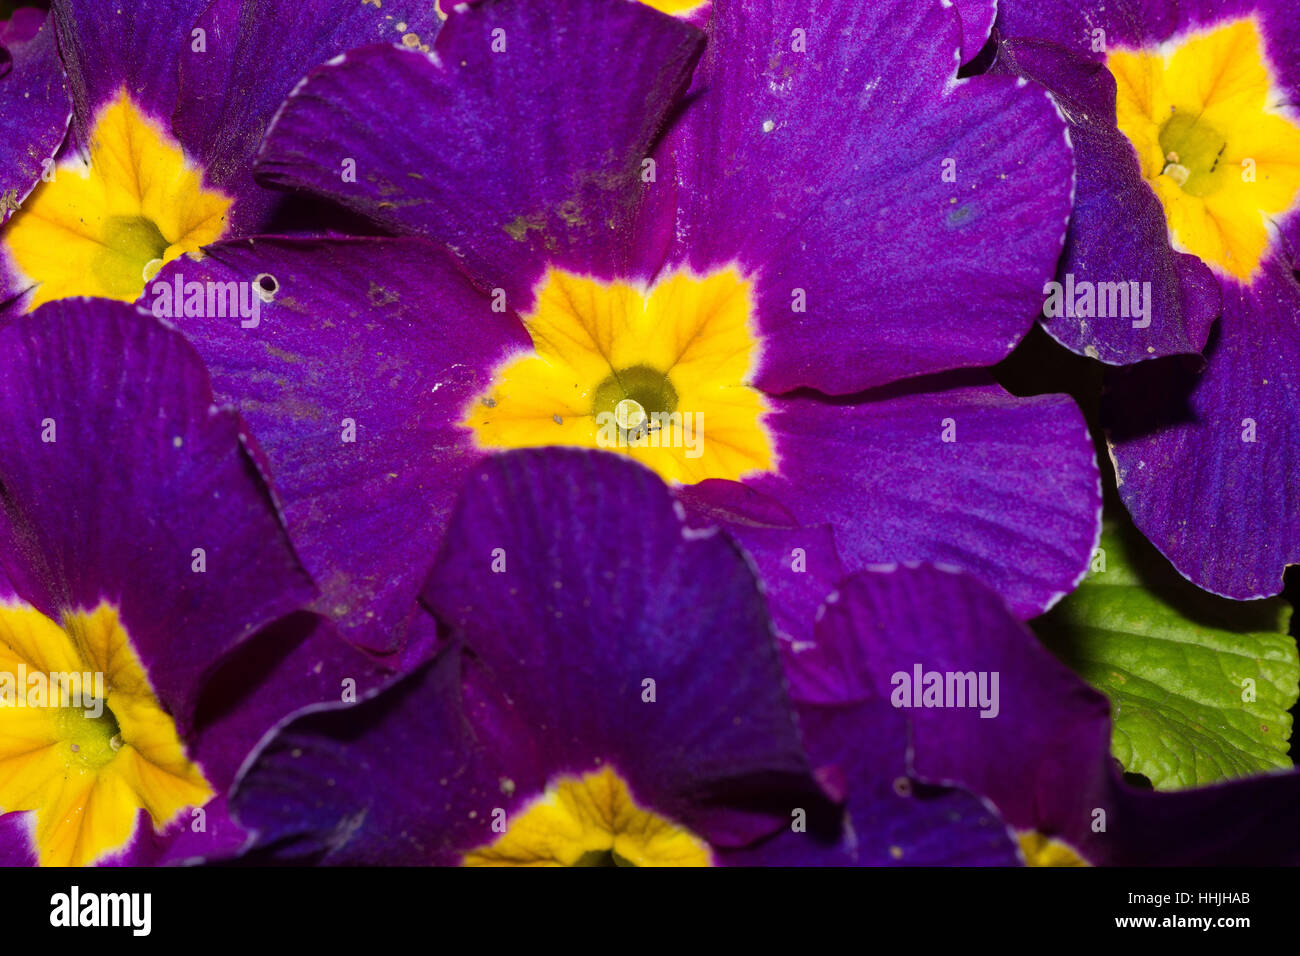 Purple flowers with striped velvet textured petals and yellow centre purple flowers with striped velvet textured petals and yellow centre close up mightylinksfo